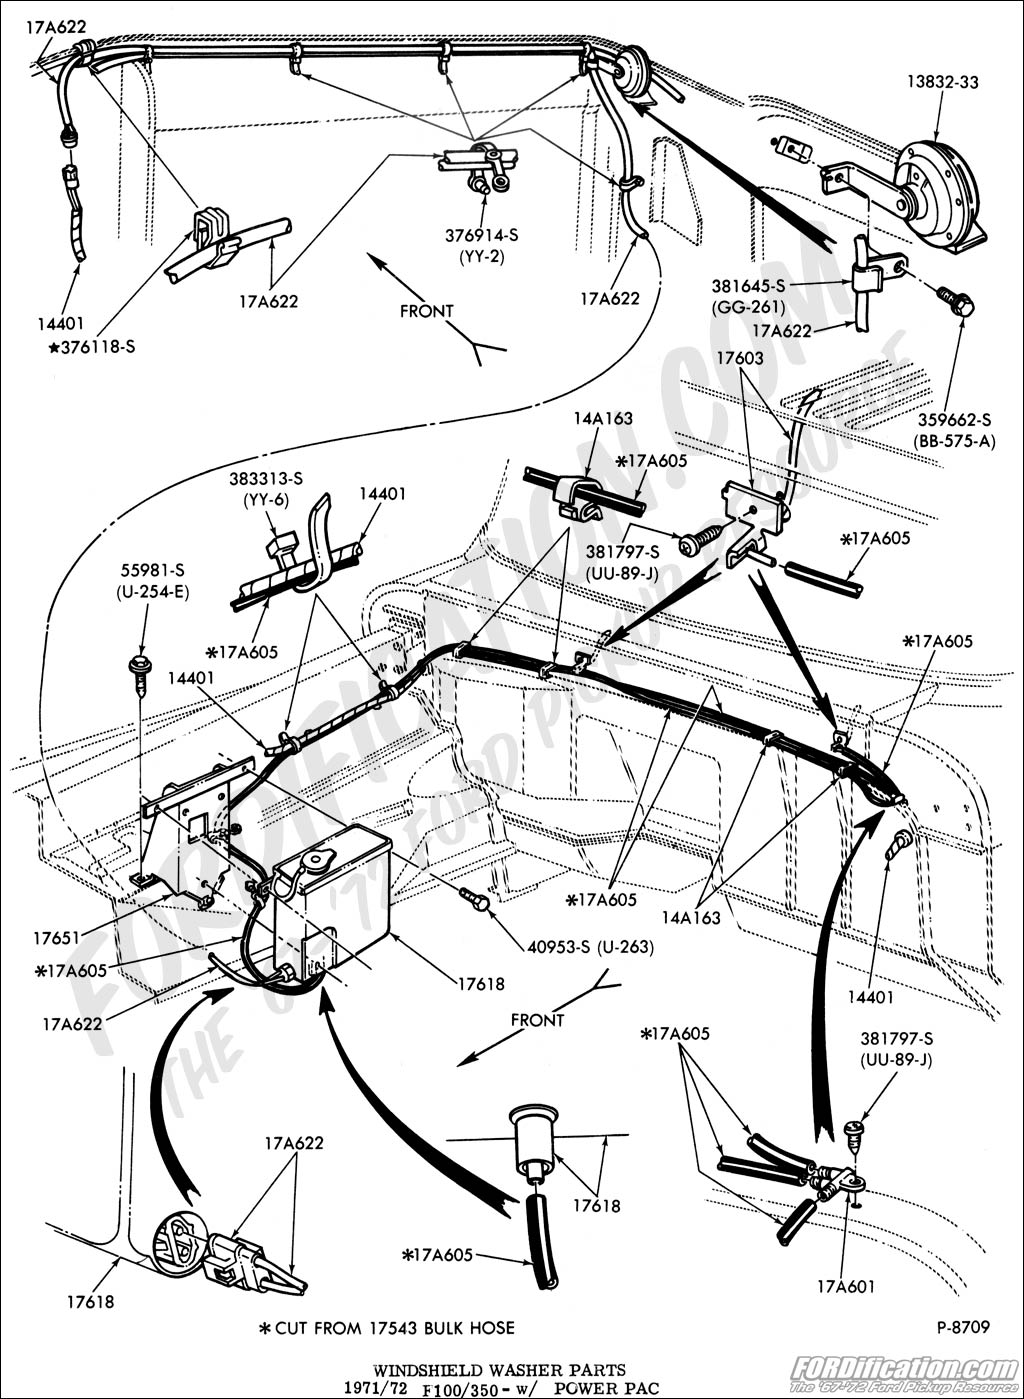 1968 F100 Wiring Diagram Simple Guide About Ford Truck Steering Column Technical Drawings And Schematics Section I